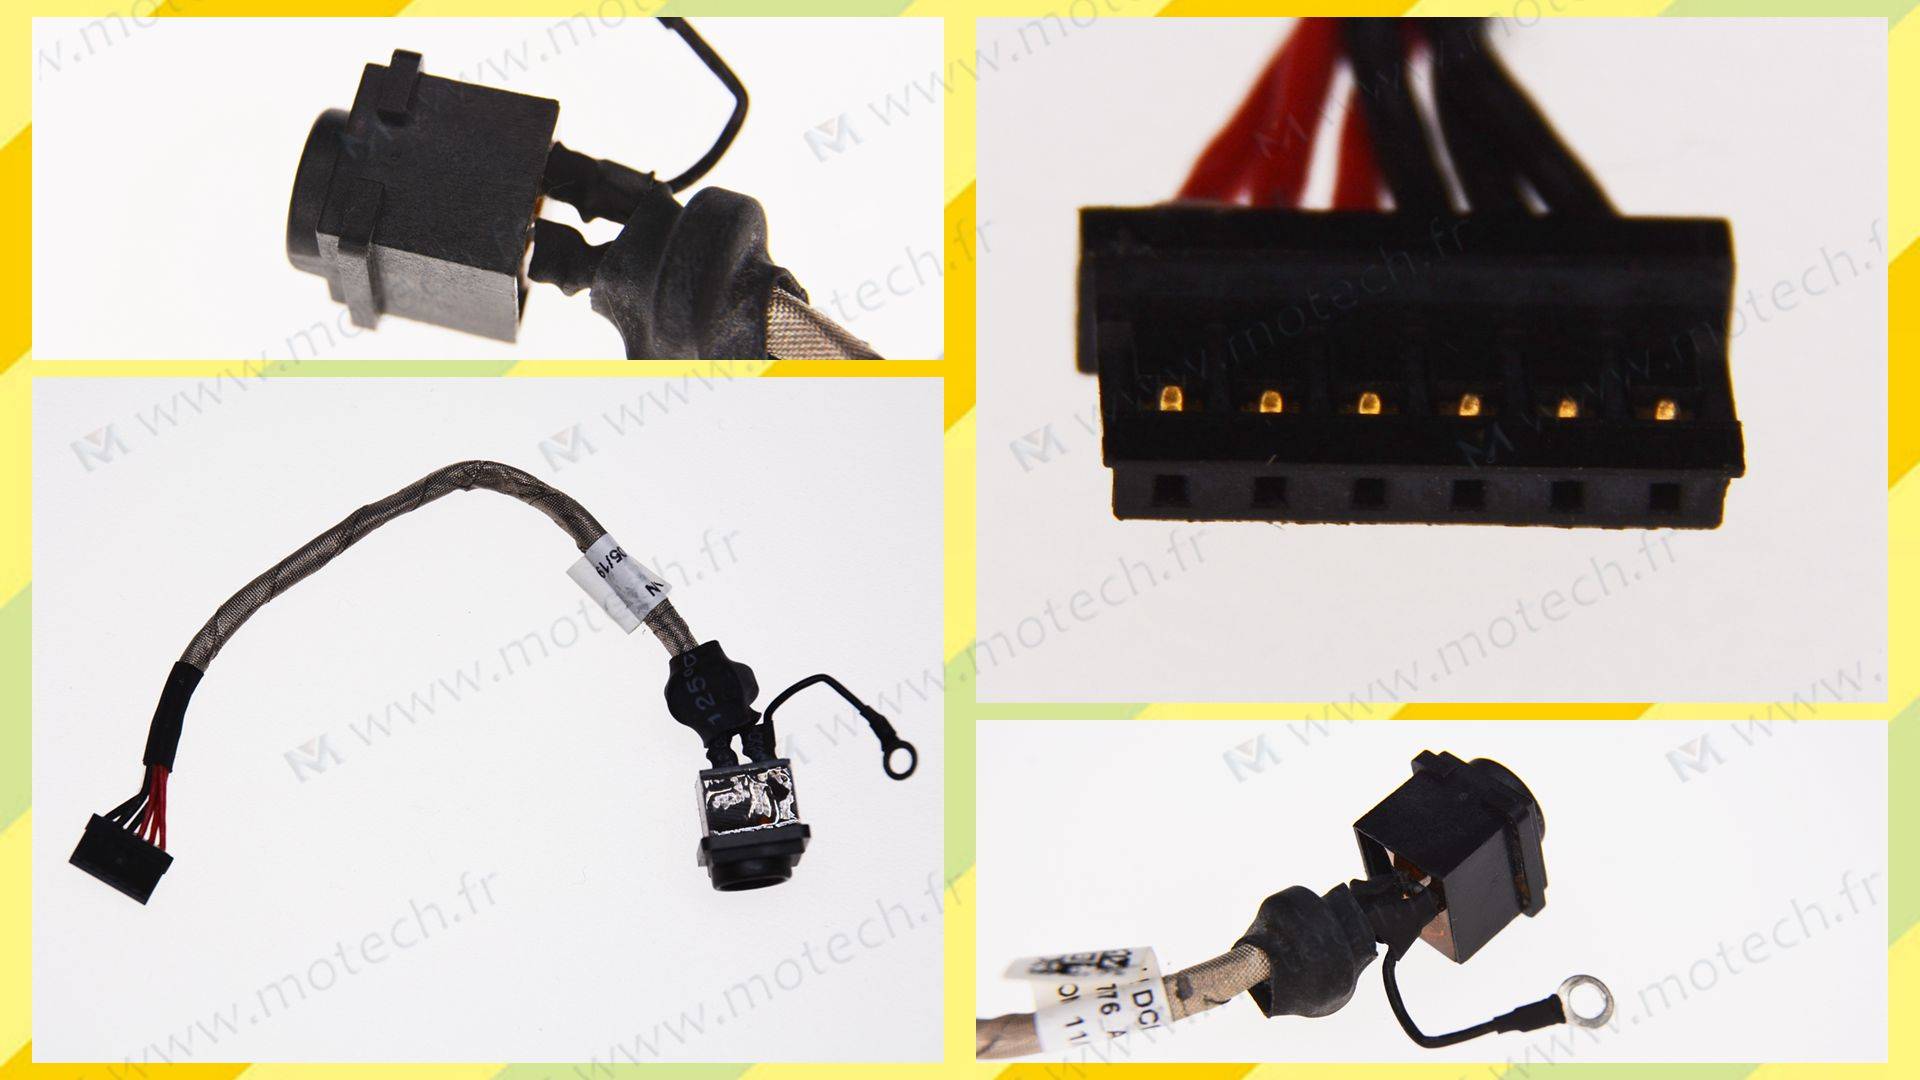 Sony VPCF2390X charging connector, Sony VPCF2390X DC Power Jack, Sony VPCF2390X DC IN Cable, Sony VPCF2390X Power Jack, Sony VPCF2390X plug, Sony VPCF2390X Jack socket, Sony VPCF2390X connecteur de charge,